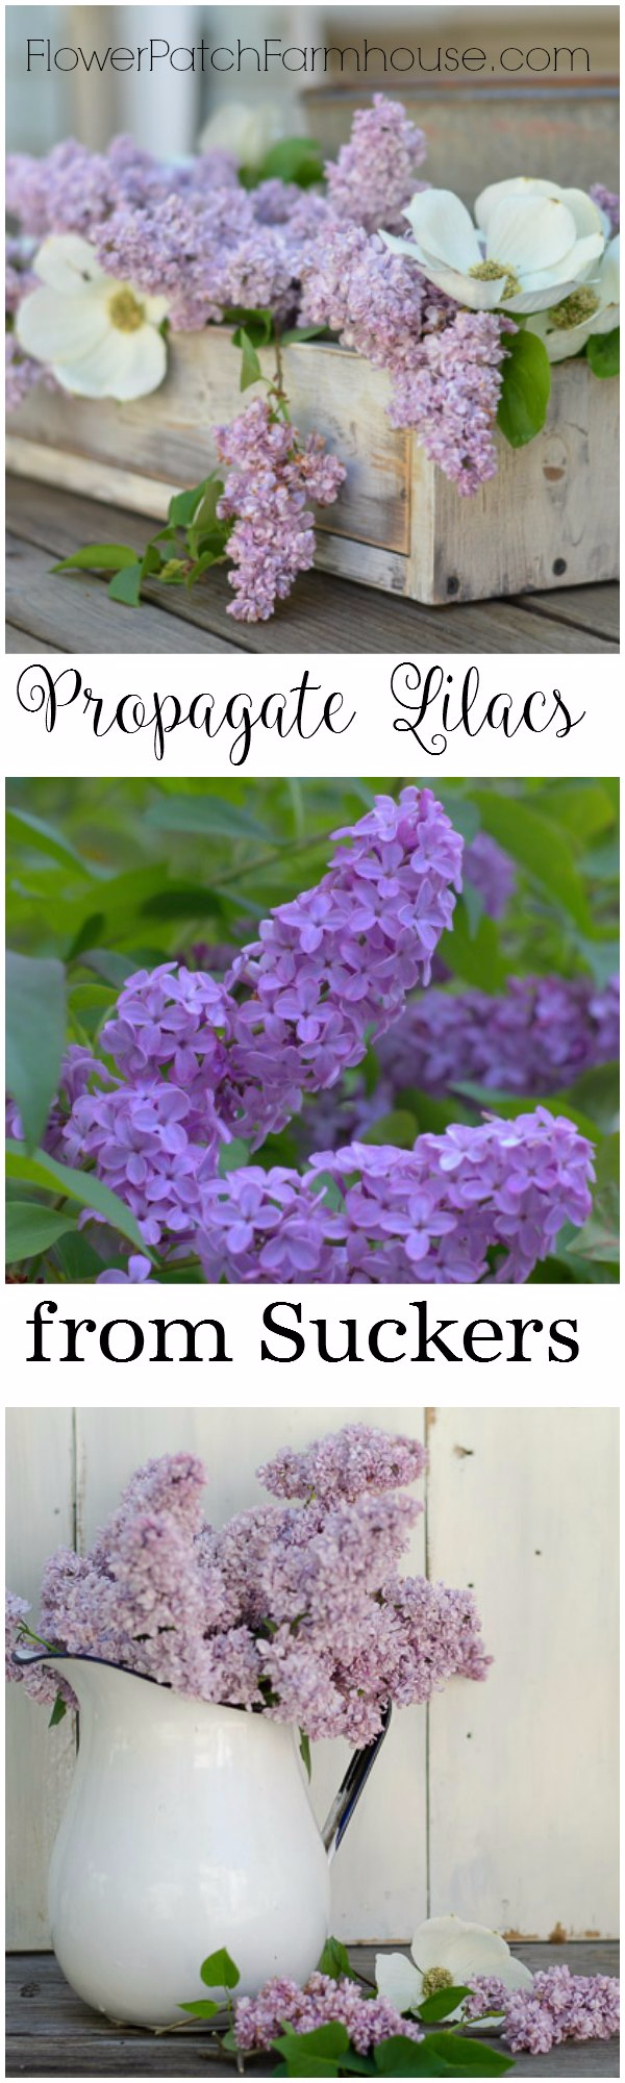 DIY Spring Gardening Projects - Propagate Lilacs From Suckers - Cool and Easy Planting Tips for Spring Garden - Step by Step Tutorials for Growing Seeds, Plants, Vegetables and Flowers in You Yard - DIY Project Ideas for Women and Men - Creative and Quick Backyard Ideas For Summer http://diyjoy.com/diy-spring-gardening